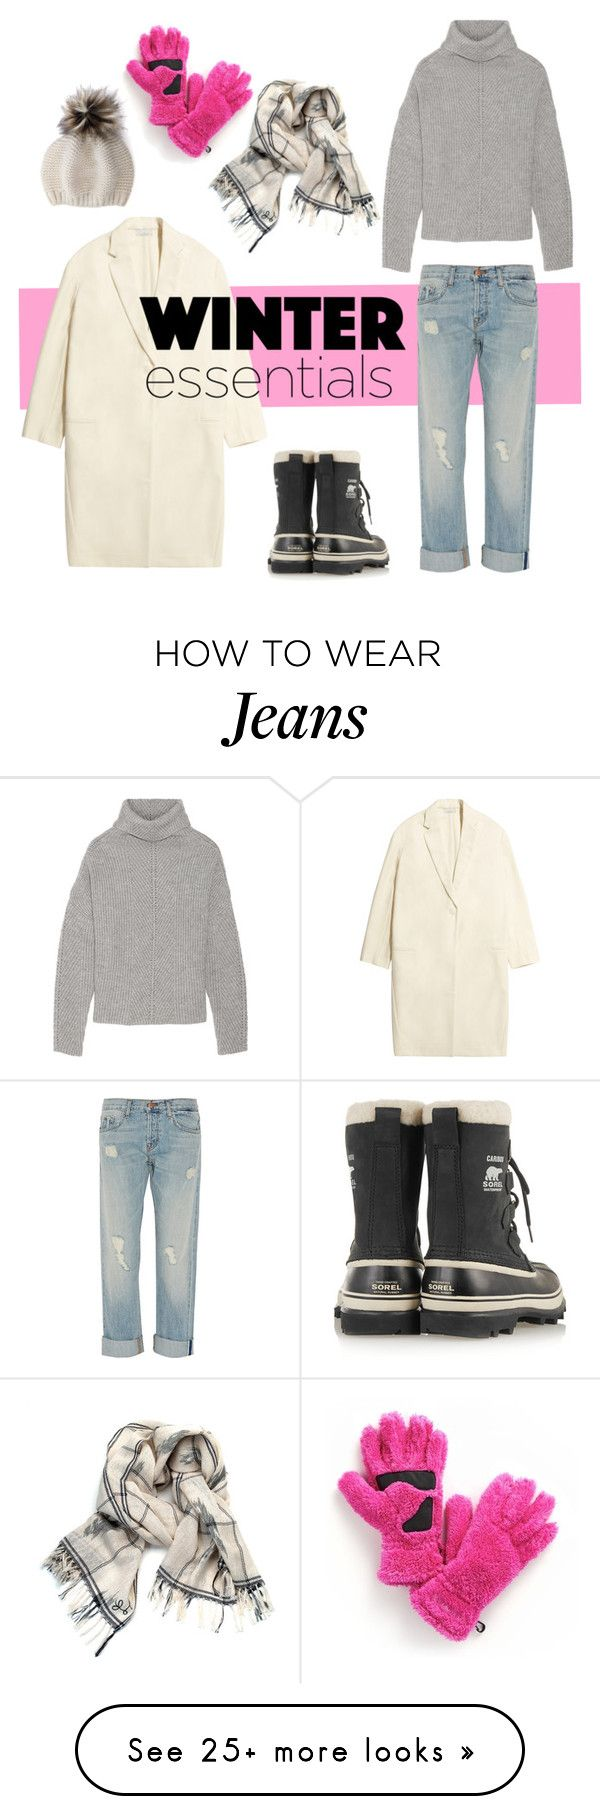 """""""Get Ready for Winter"""" by youaresofashion on Polyvore featuring Studio Nicholson, Maje, J Brand, SOREL, Little Fool Textiles, Columbia Sportswear and winteressentials"""